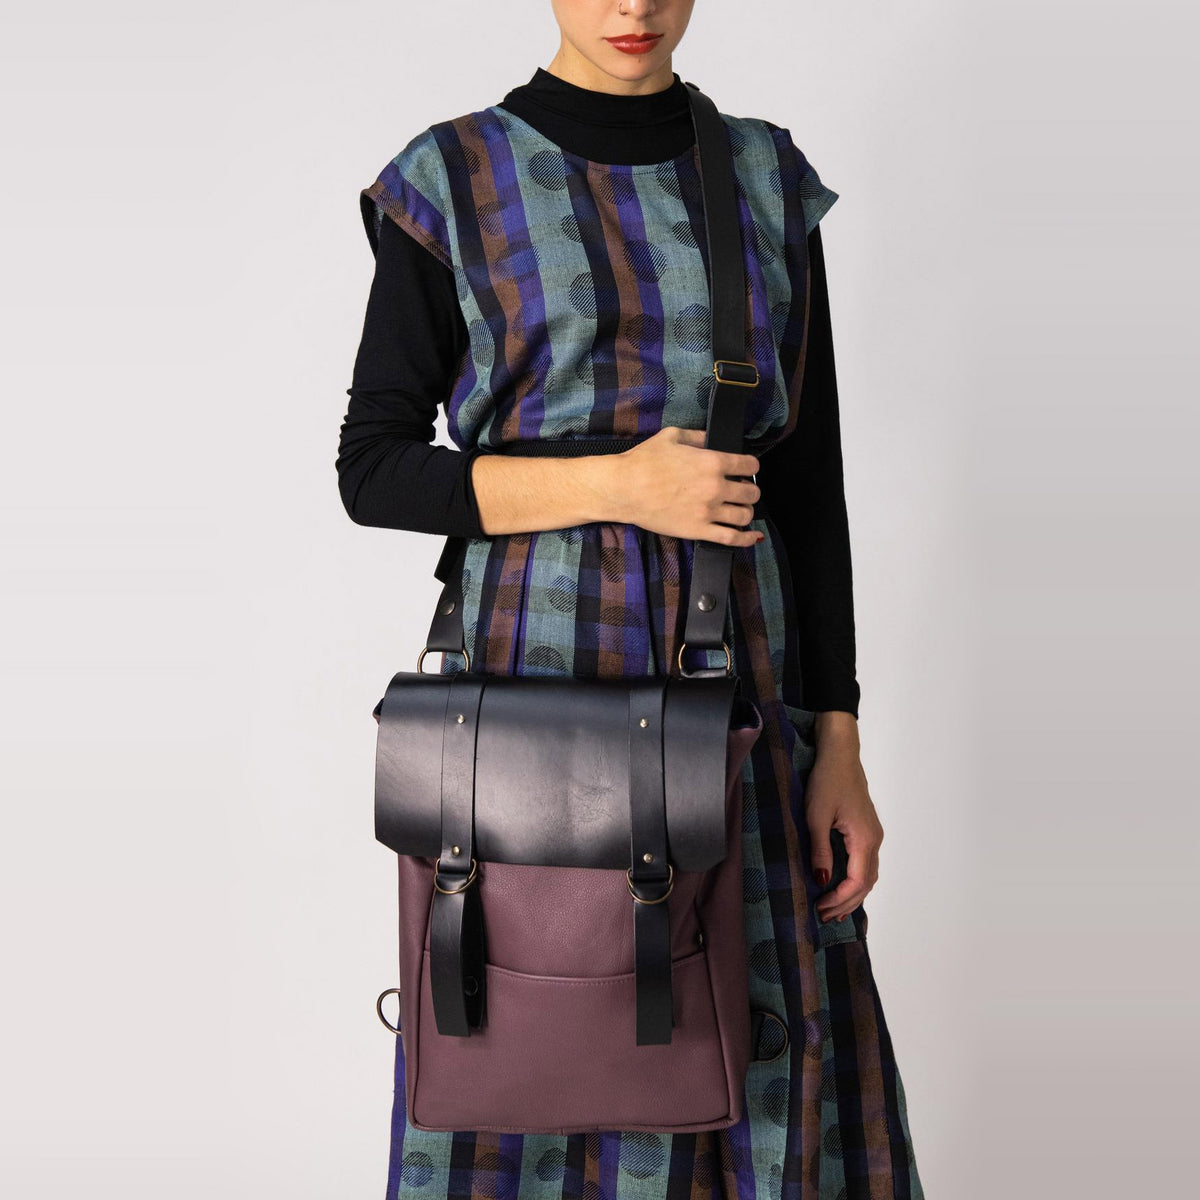 Model Wearing a Purple & Black Handcrafted Leather Backpack / Crossbody Bag - Sold by Chic & Basta